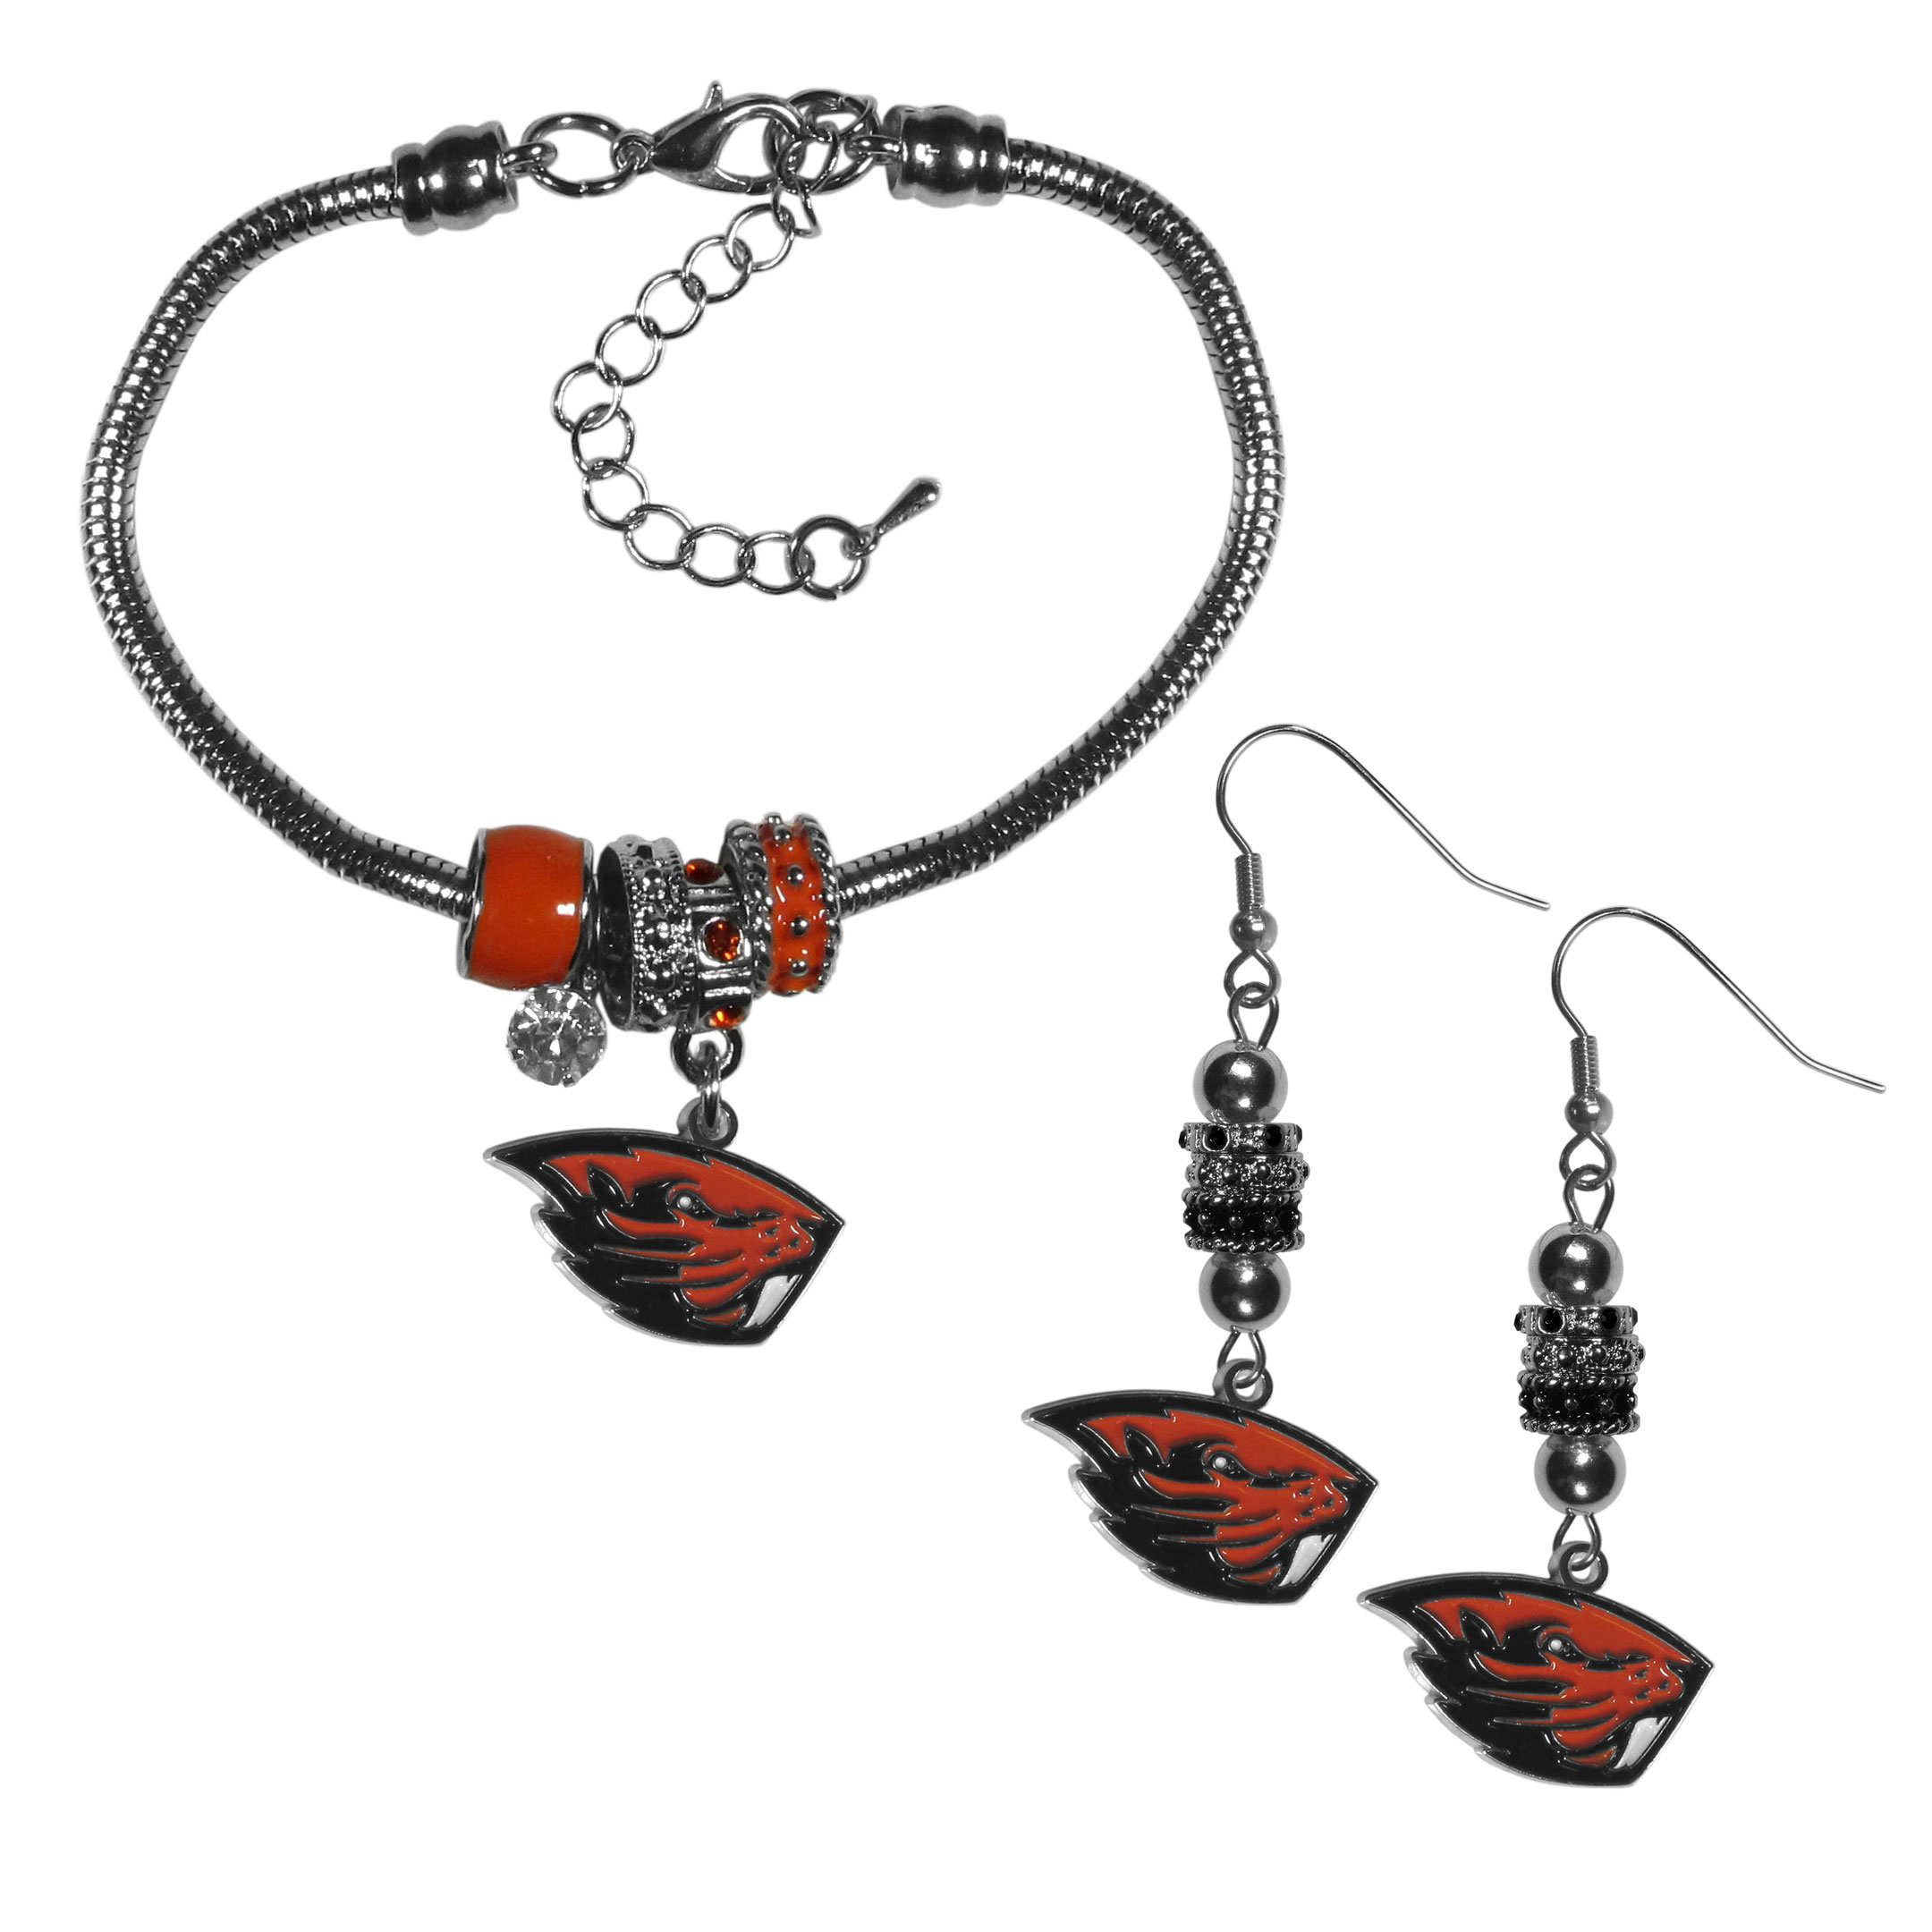 Oregon St. Beavers Euro Bead Earrings and Bracelet Set - We combine the popular Euro bead style with your love of the Oregon St. Beavers with this beautiful jewelry set that includes earrings and a matching bracelet. The stylish earrings feature hypoallergenic, nickel free fishhook posts and 3 team colored Euro beads and a metal team charm. The matching snake chain bracelet is 7.5 inches long with a 2 inch extender and 4 Euro beads with a rhinestone charm and team charm.